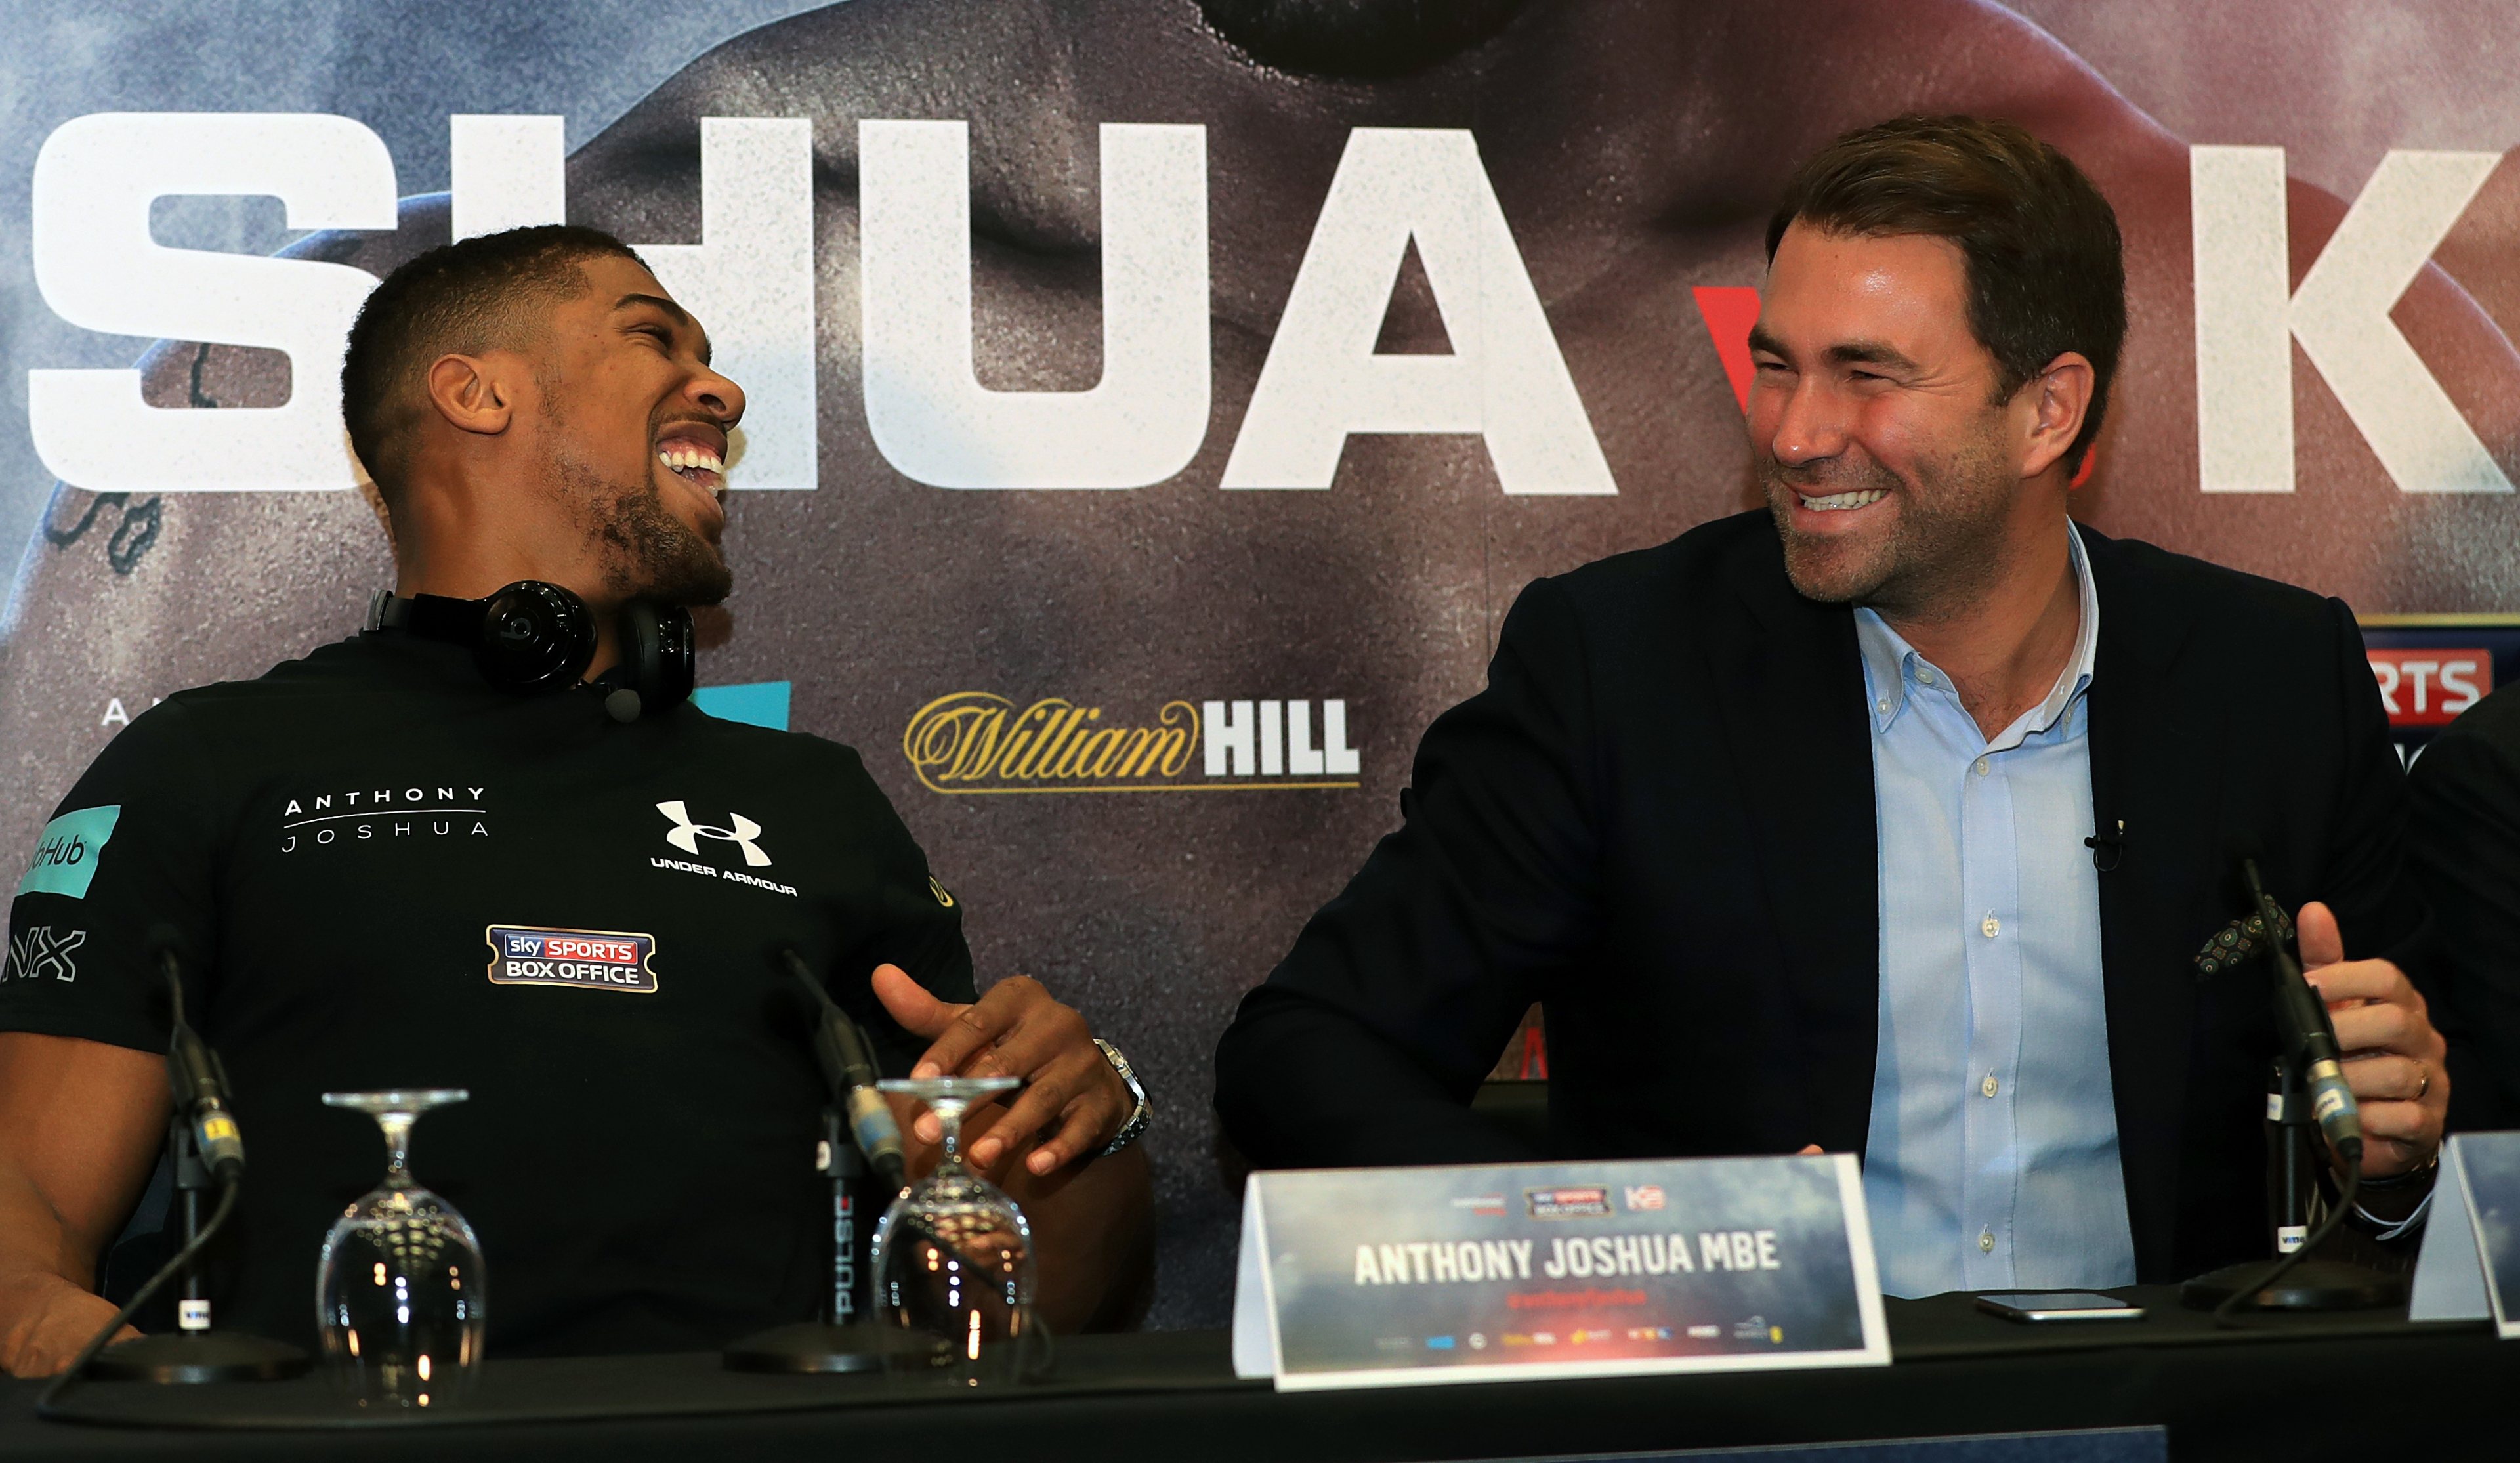 Anthony Joshua and promoter Eddie Hearn during the press conference at Wembley Stadium, London.